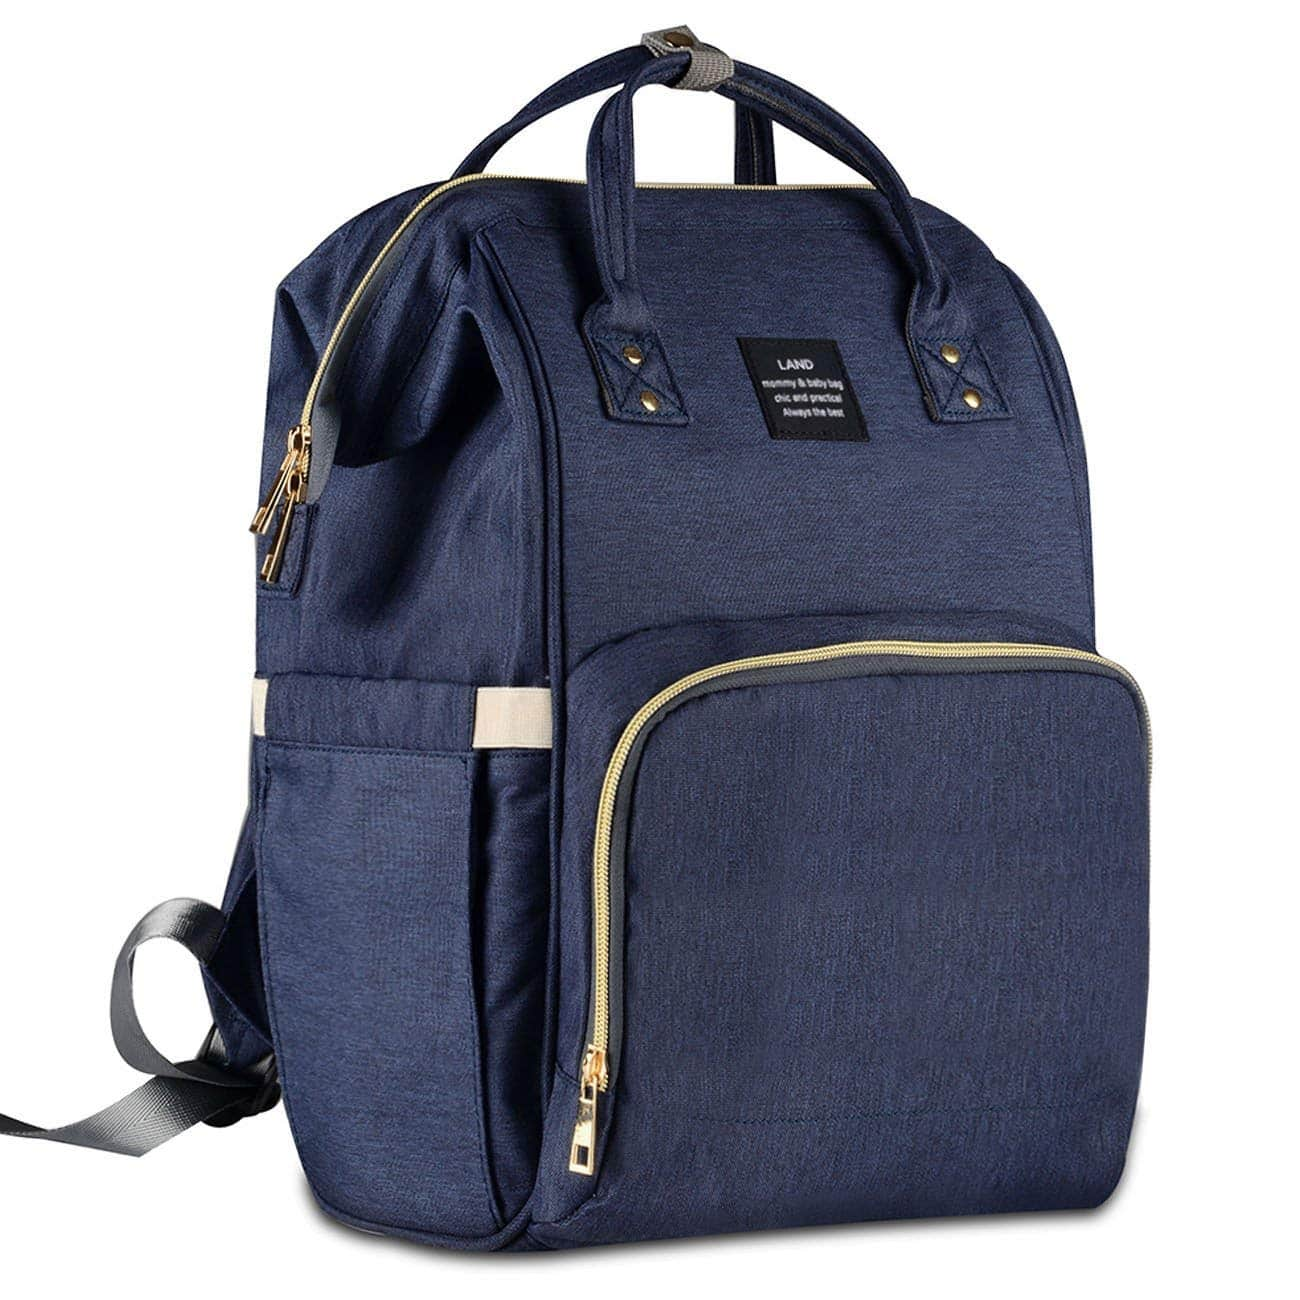 25f3baf7dce HaloVa Diaper Bag Multi-Function Waterproof Travel Backpack Nappy Bags for Baby  Care, Large Capacity, Stylish and Durable, Dark Blue  35.99 - Slickdeals.net